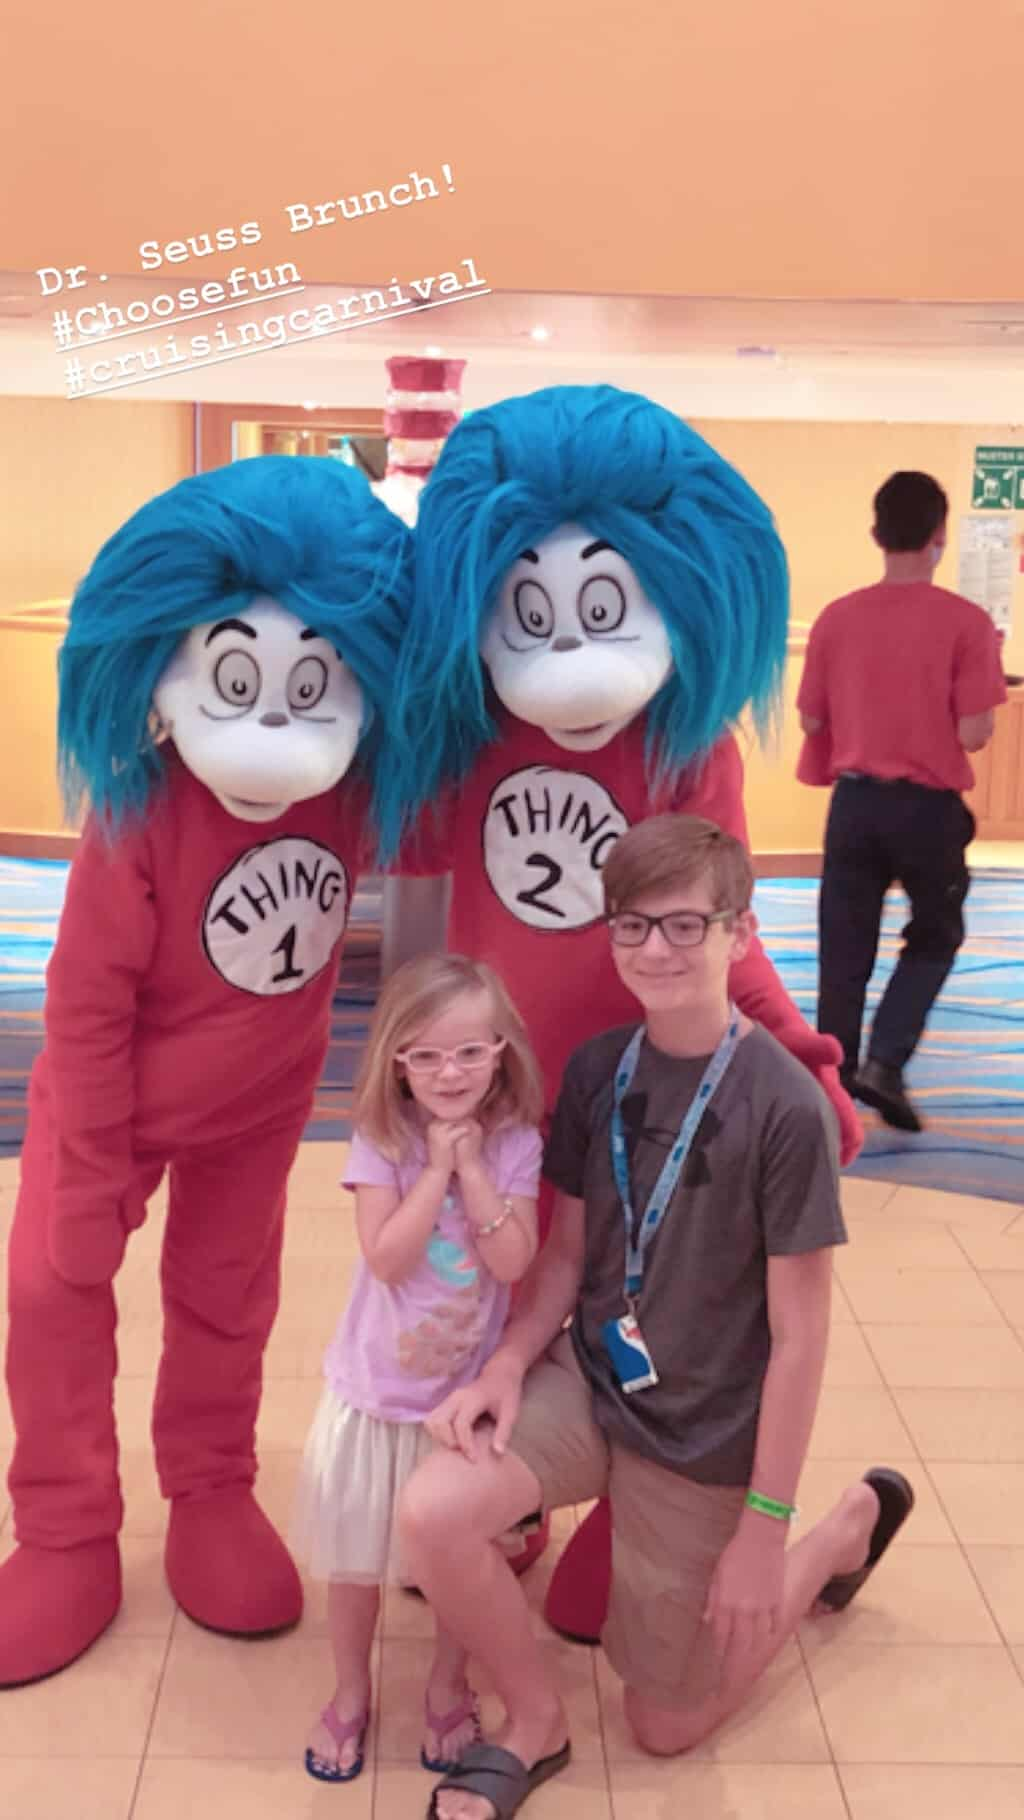 picture with thing 1 and thing 2